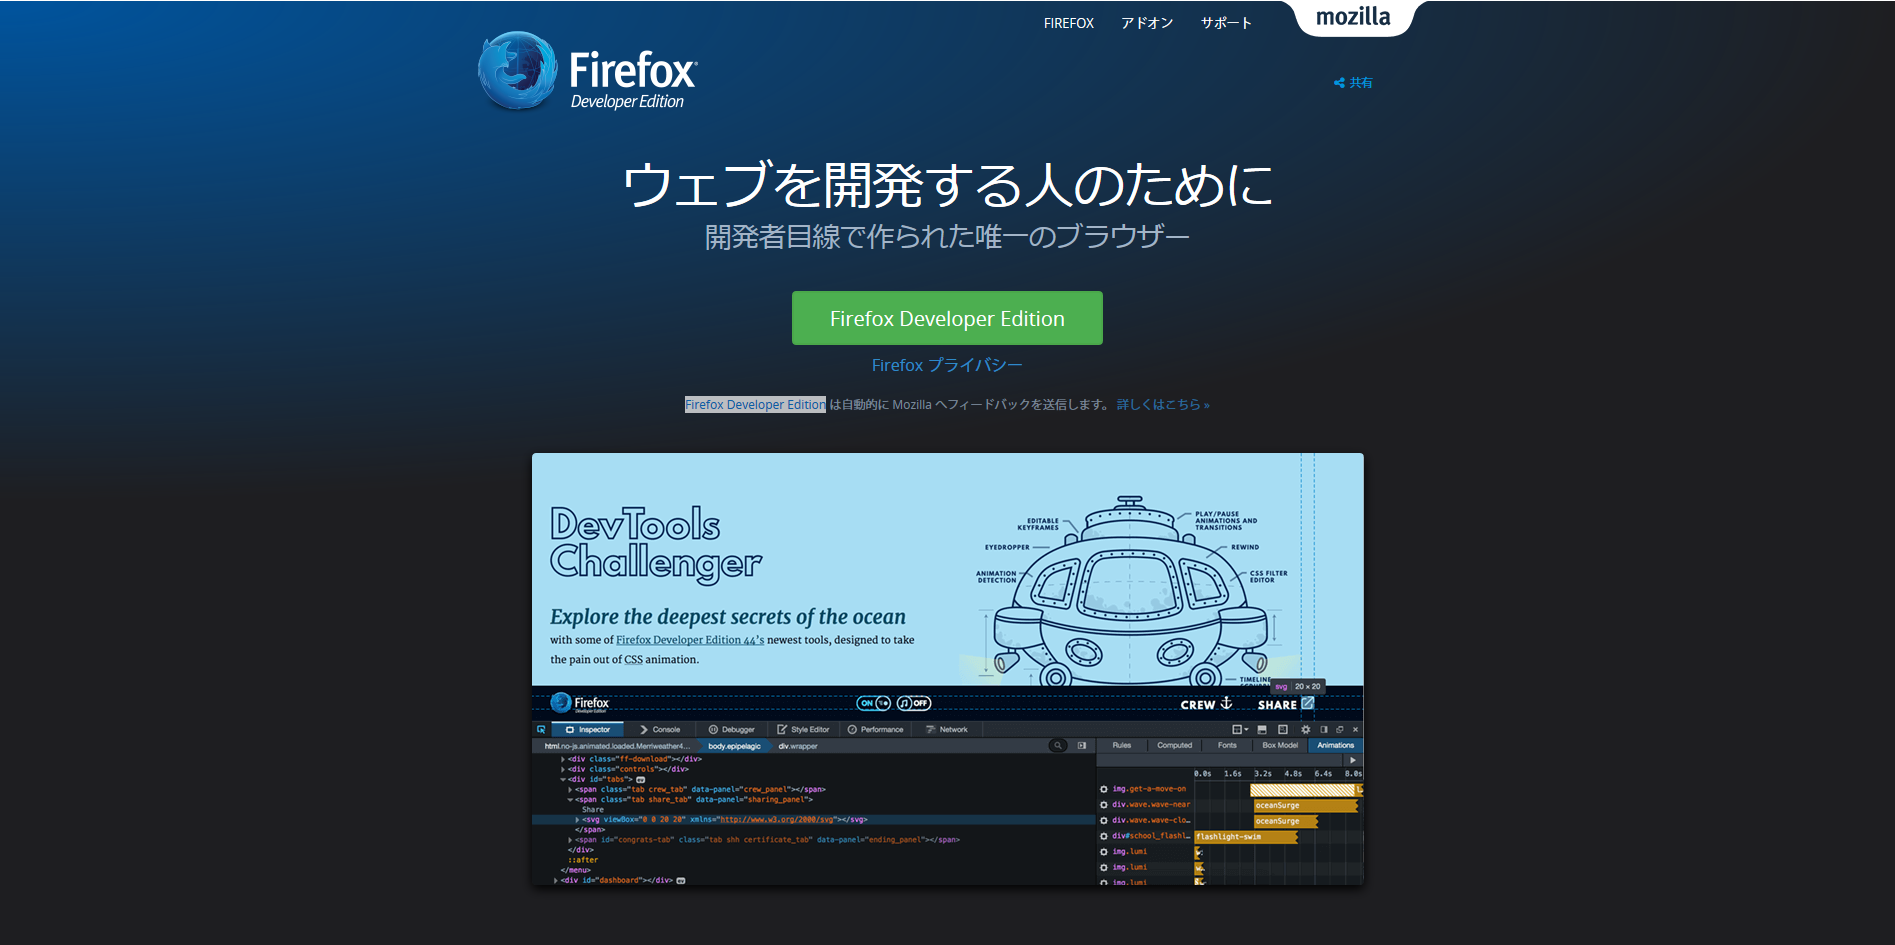 Firefox Developer Editionダウンロード画面